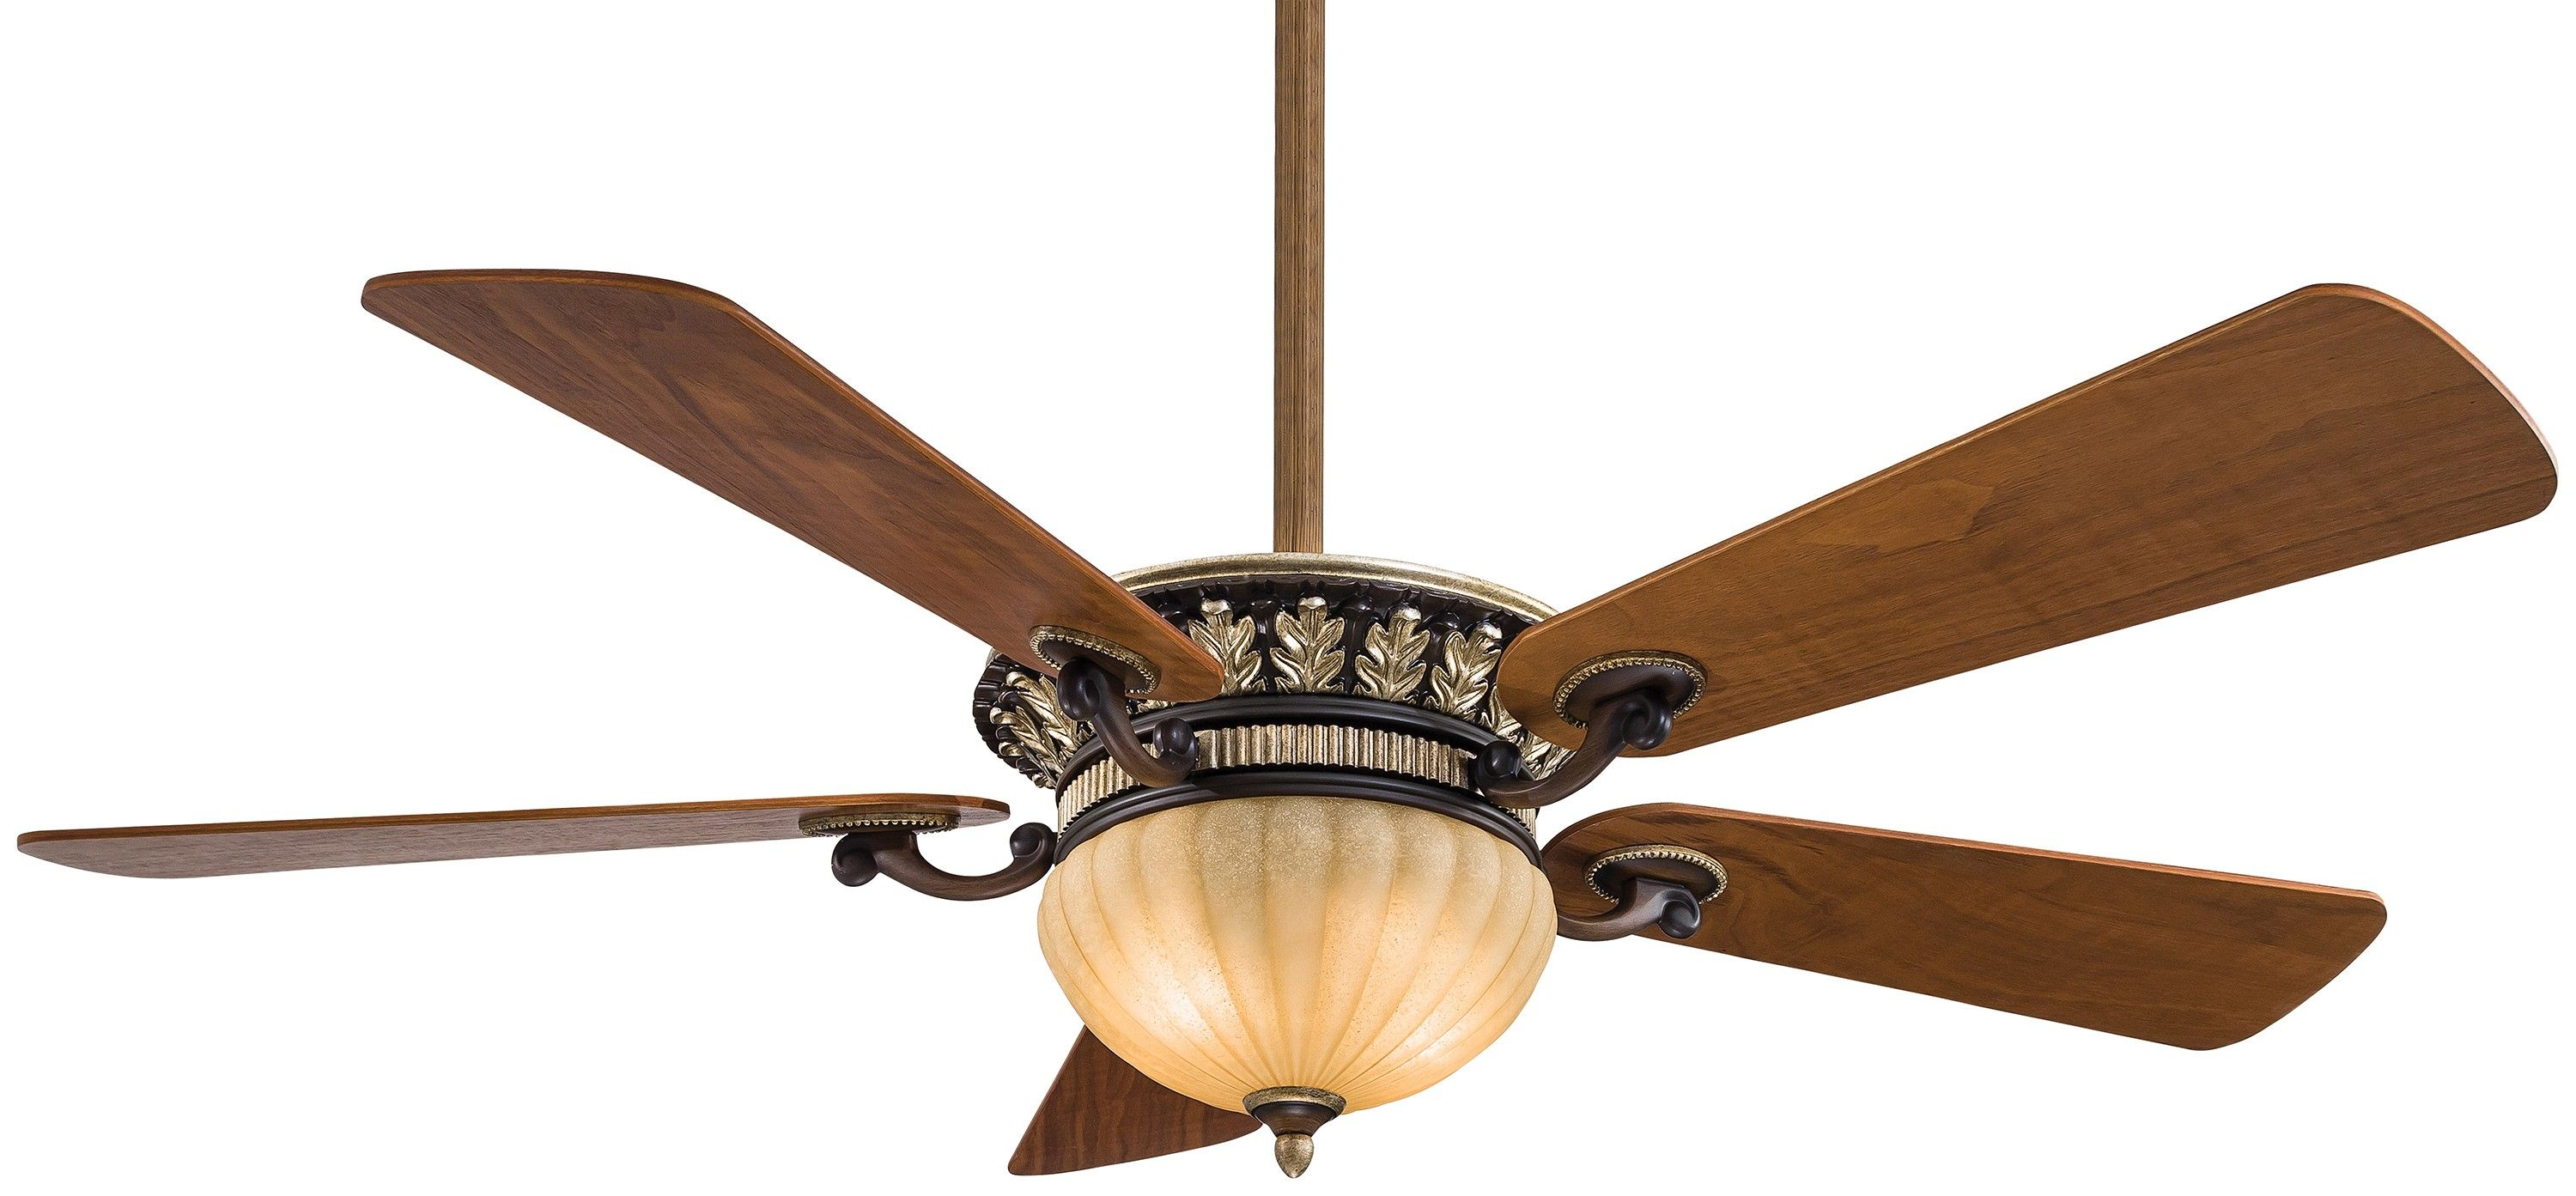 52 Ceiling Fan Three Sds Up Down Light Dimming Wall Mount In The Belcaro Walnut Motor Finish This Model Incorporates Our Uplight